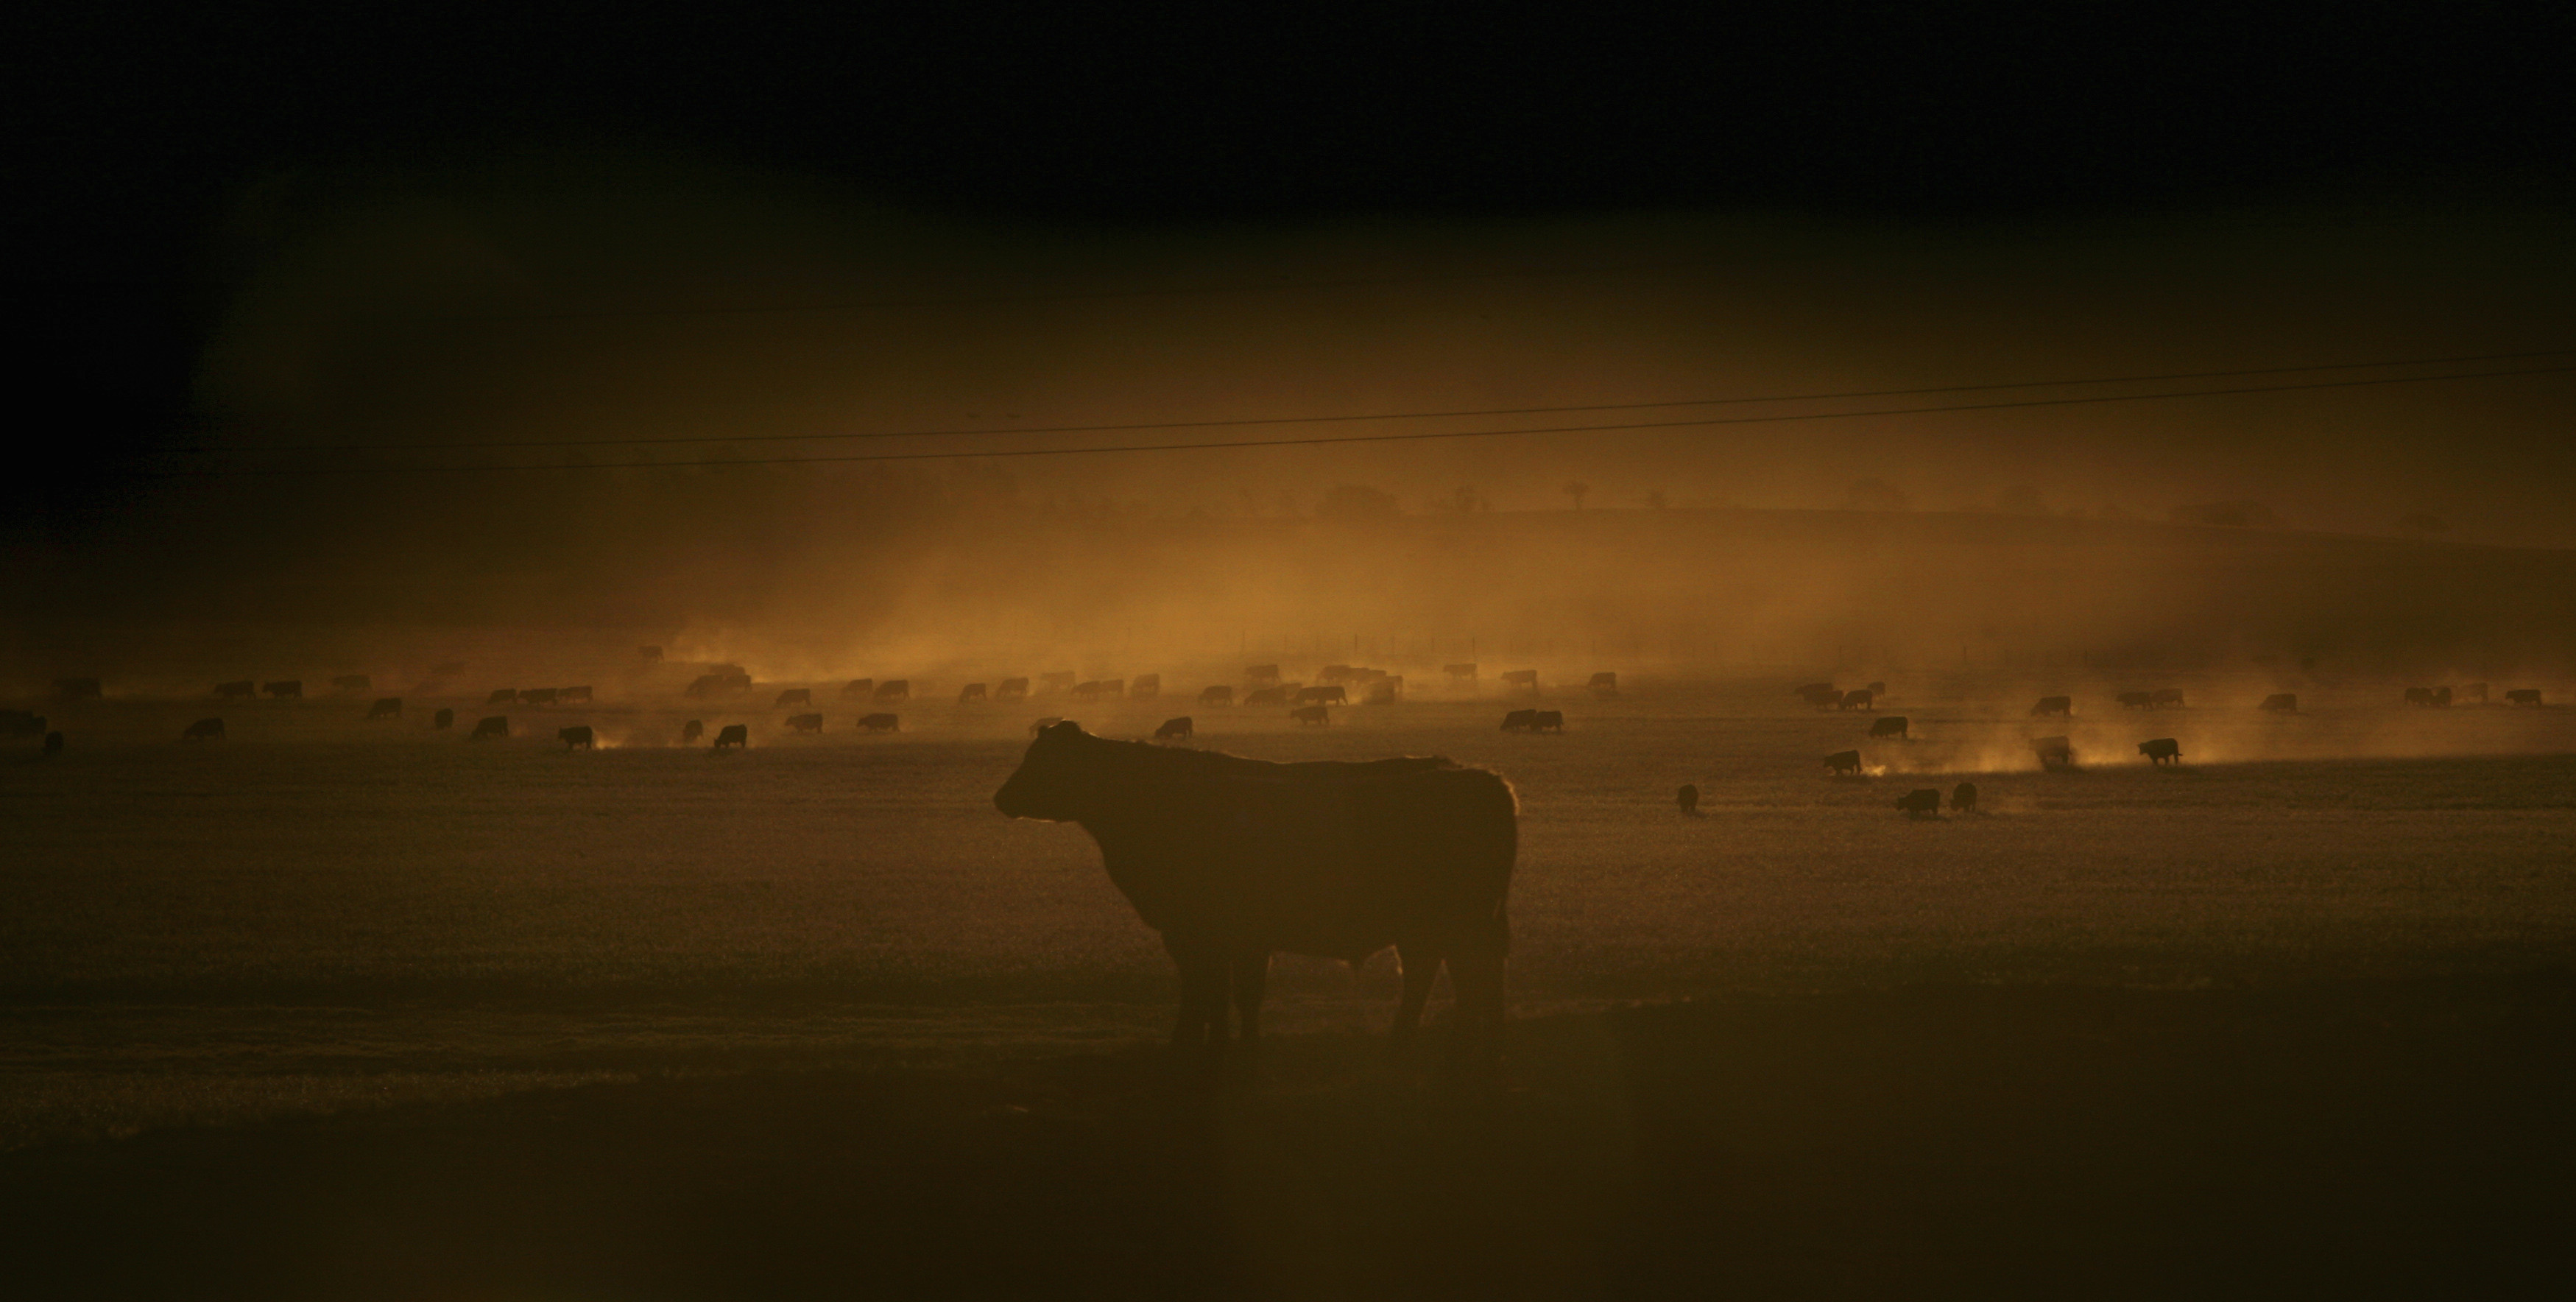 Grazing cattle raise a cloud of dust as they scratch for food on a drought affected farm near Goulburn, about 170 km (105 miles) south-west of Sydney October 29, 2006. The drought, said by some experts to be Australia's worst ever, has taken the political centre stage in recent days as forecasters slash outlooks for agricultural production.   Picture was taken through a car window during a dust storm.          REUTERS/Tim Wimborne    (AUSTRALIA) - GM1DTVBWWSAA